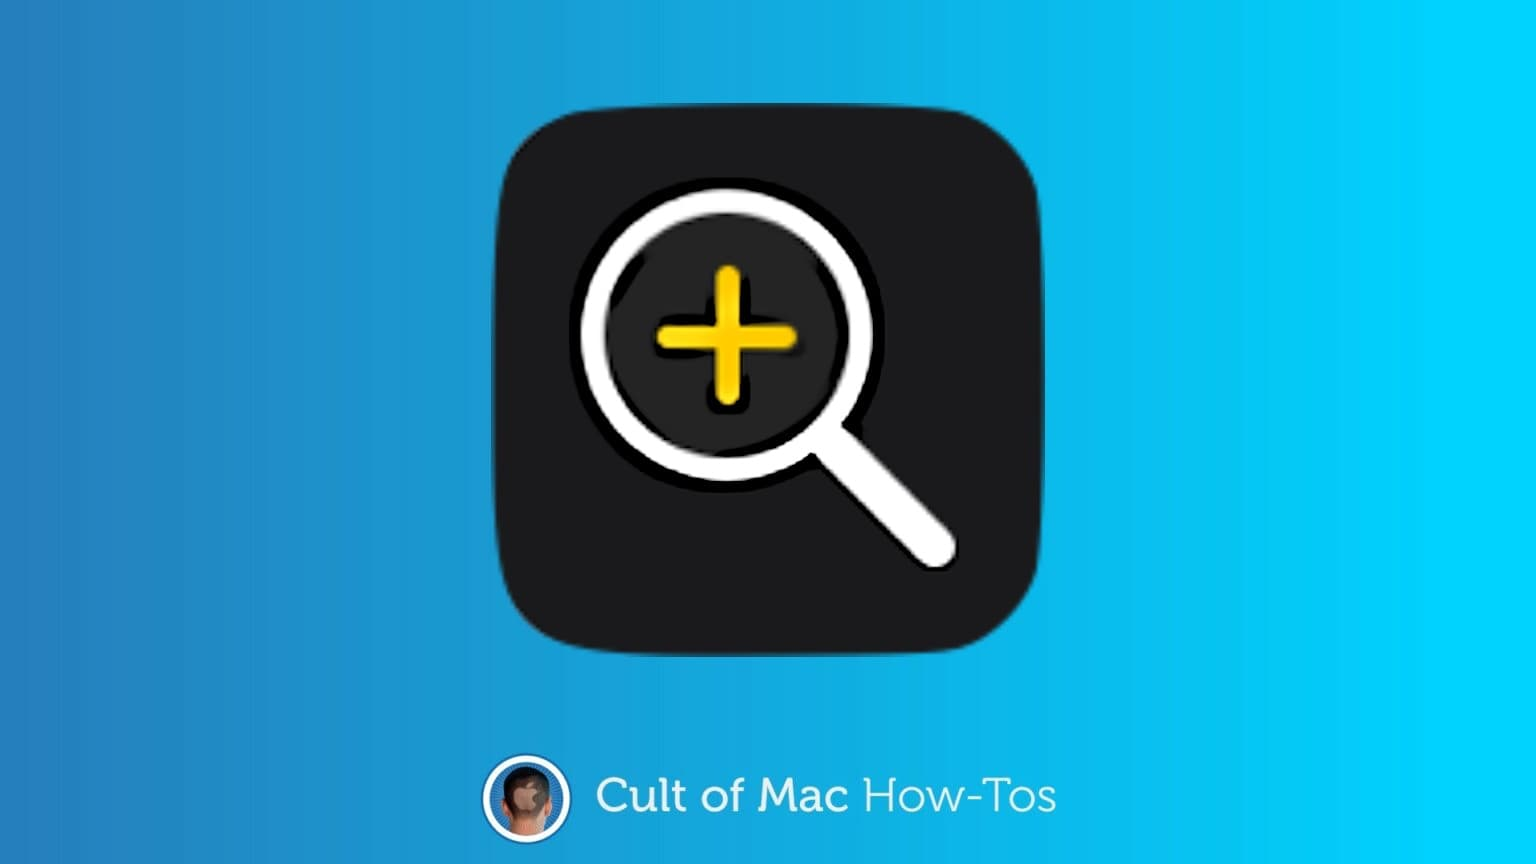 The iPhone Magnifier is easier to find in iOS 14.